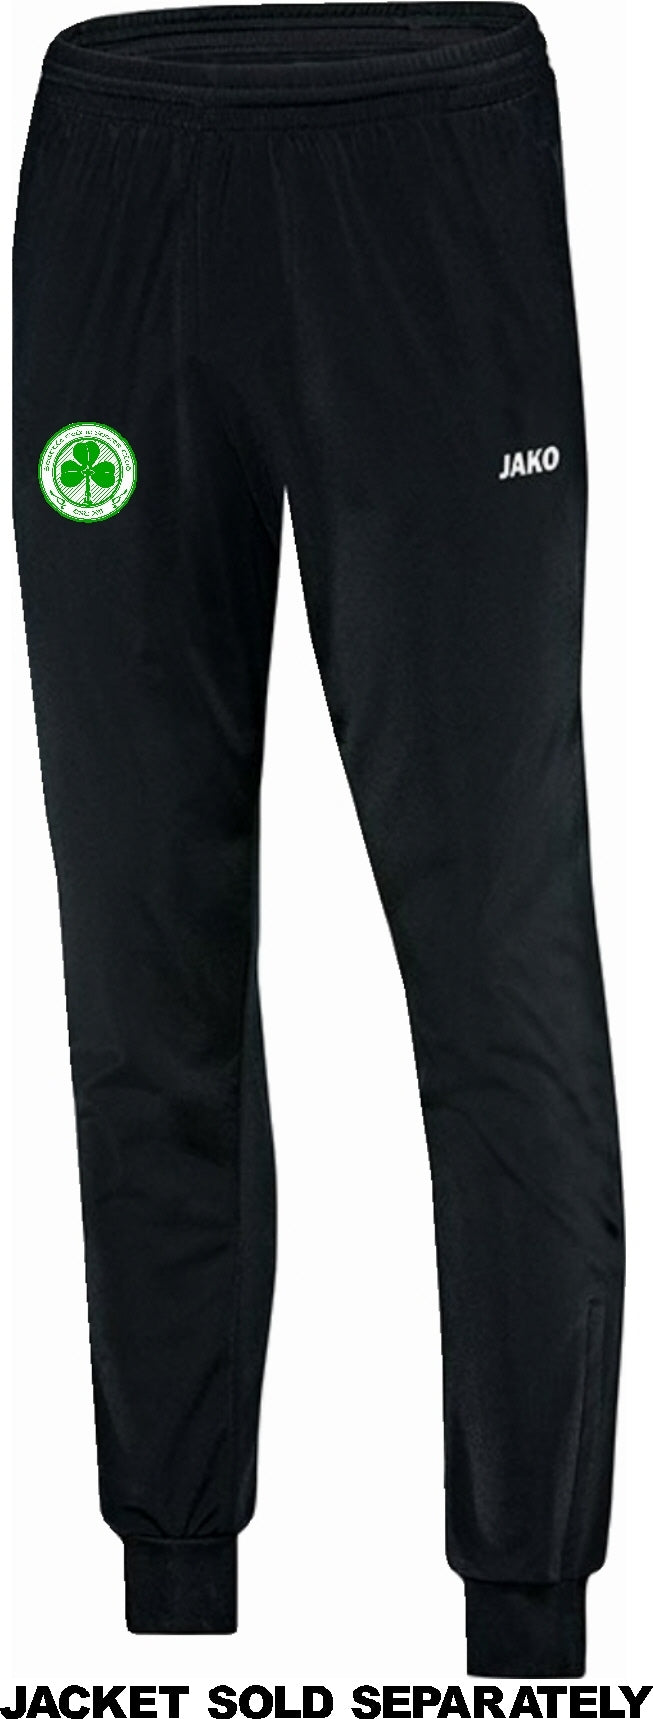 ADULT JAKO SEATTLE CELTIC POLYESTER PANTS SC9250A BLACK